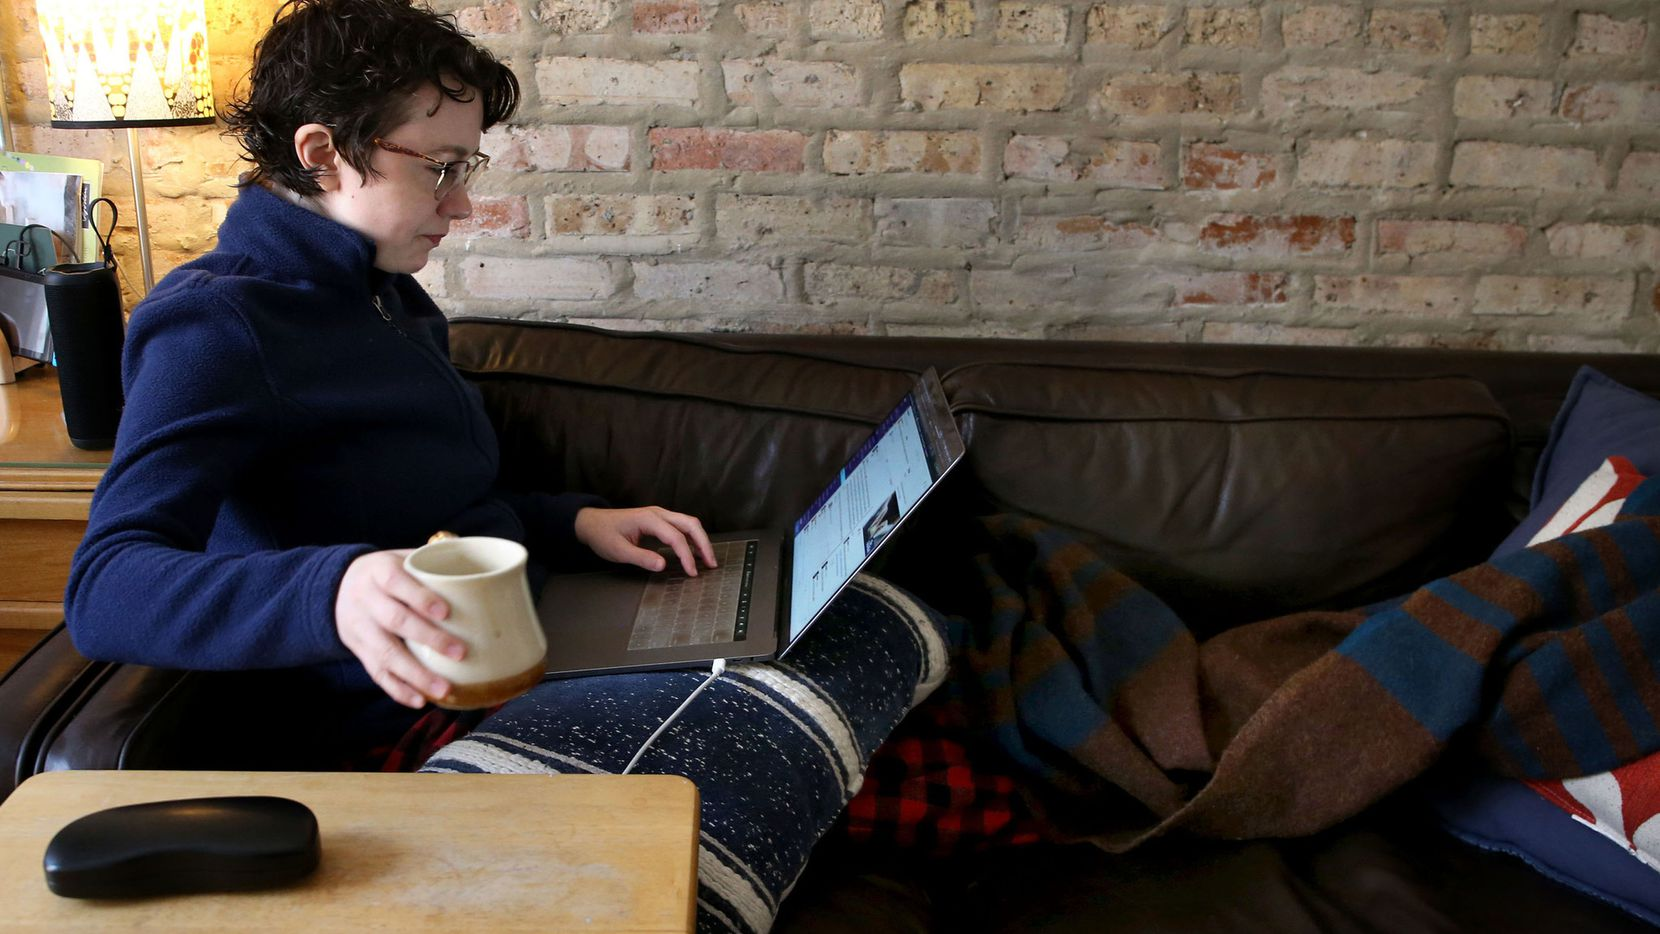 Glitch.com software engineer Melissa McEwen, 33, works from her Logan Square neighborhood home on March 12. She has worked remotely for five years.